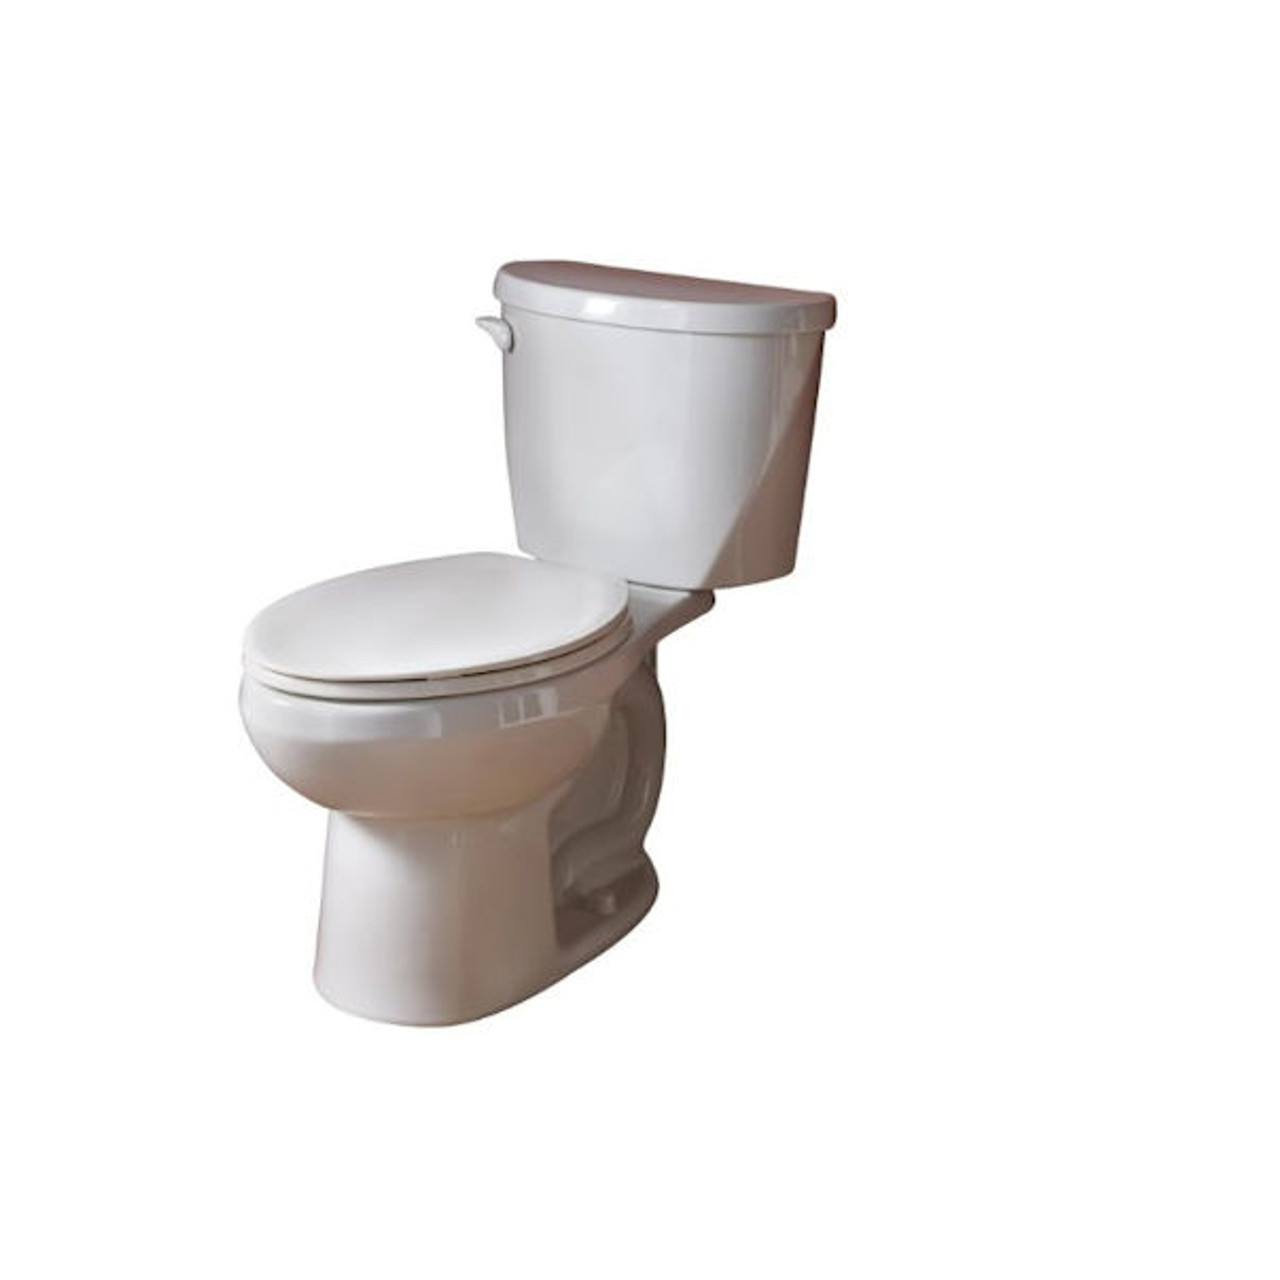 American Evolution 2Right Height Elongated TwoPiece Flowise1.28 gpf Toilet White